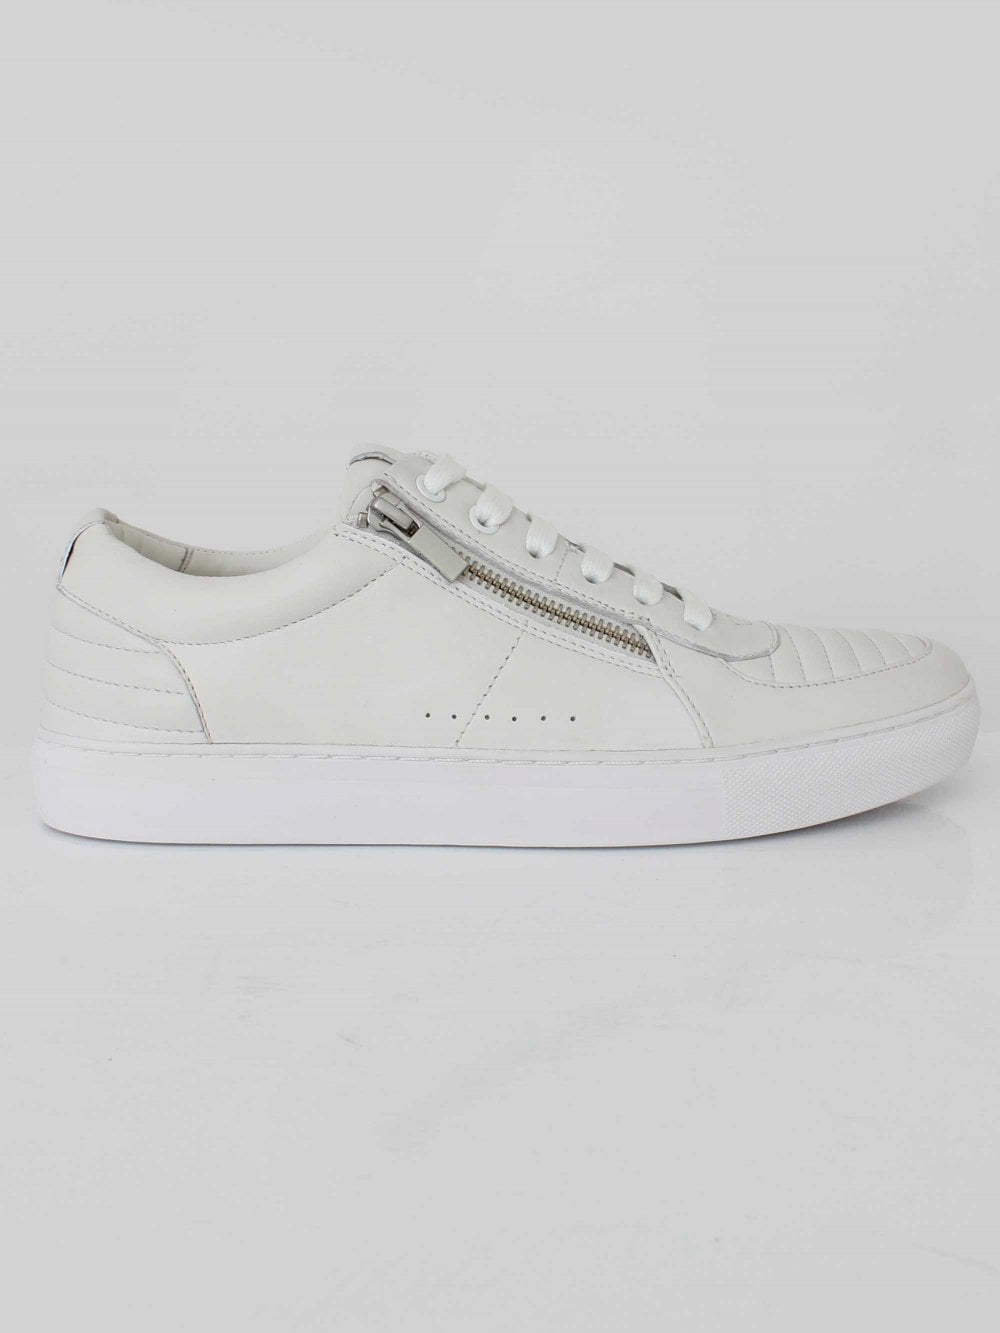 c512d2d3df29 Hugo Boss Futurism Tenn Trainer in White | Northern Threads